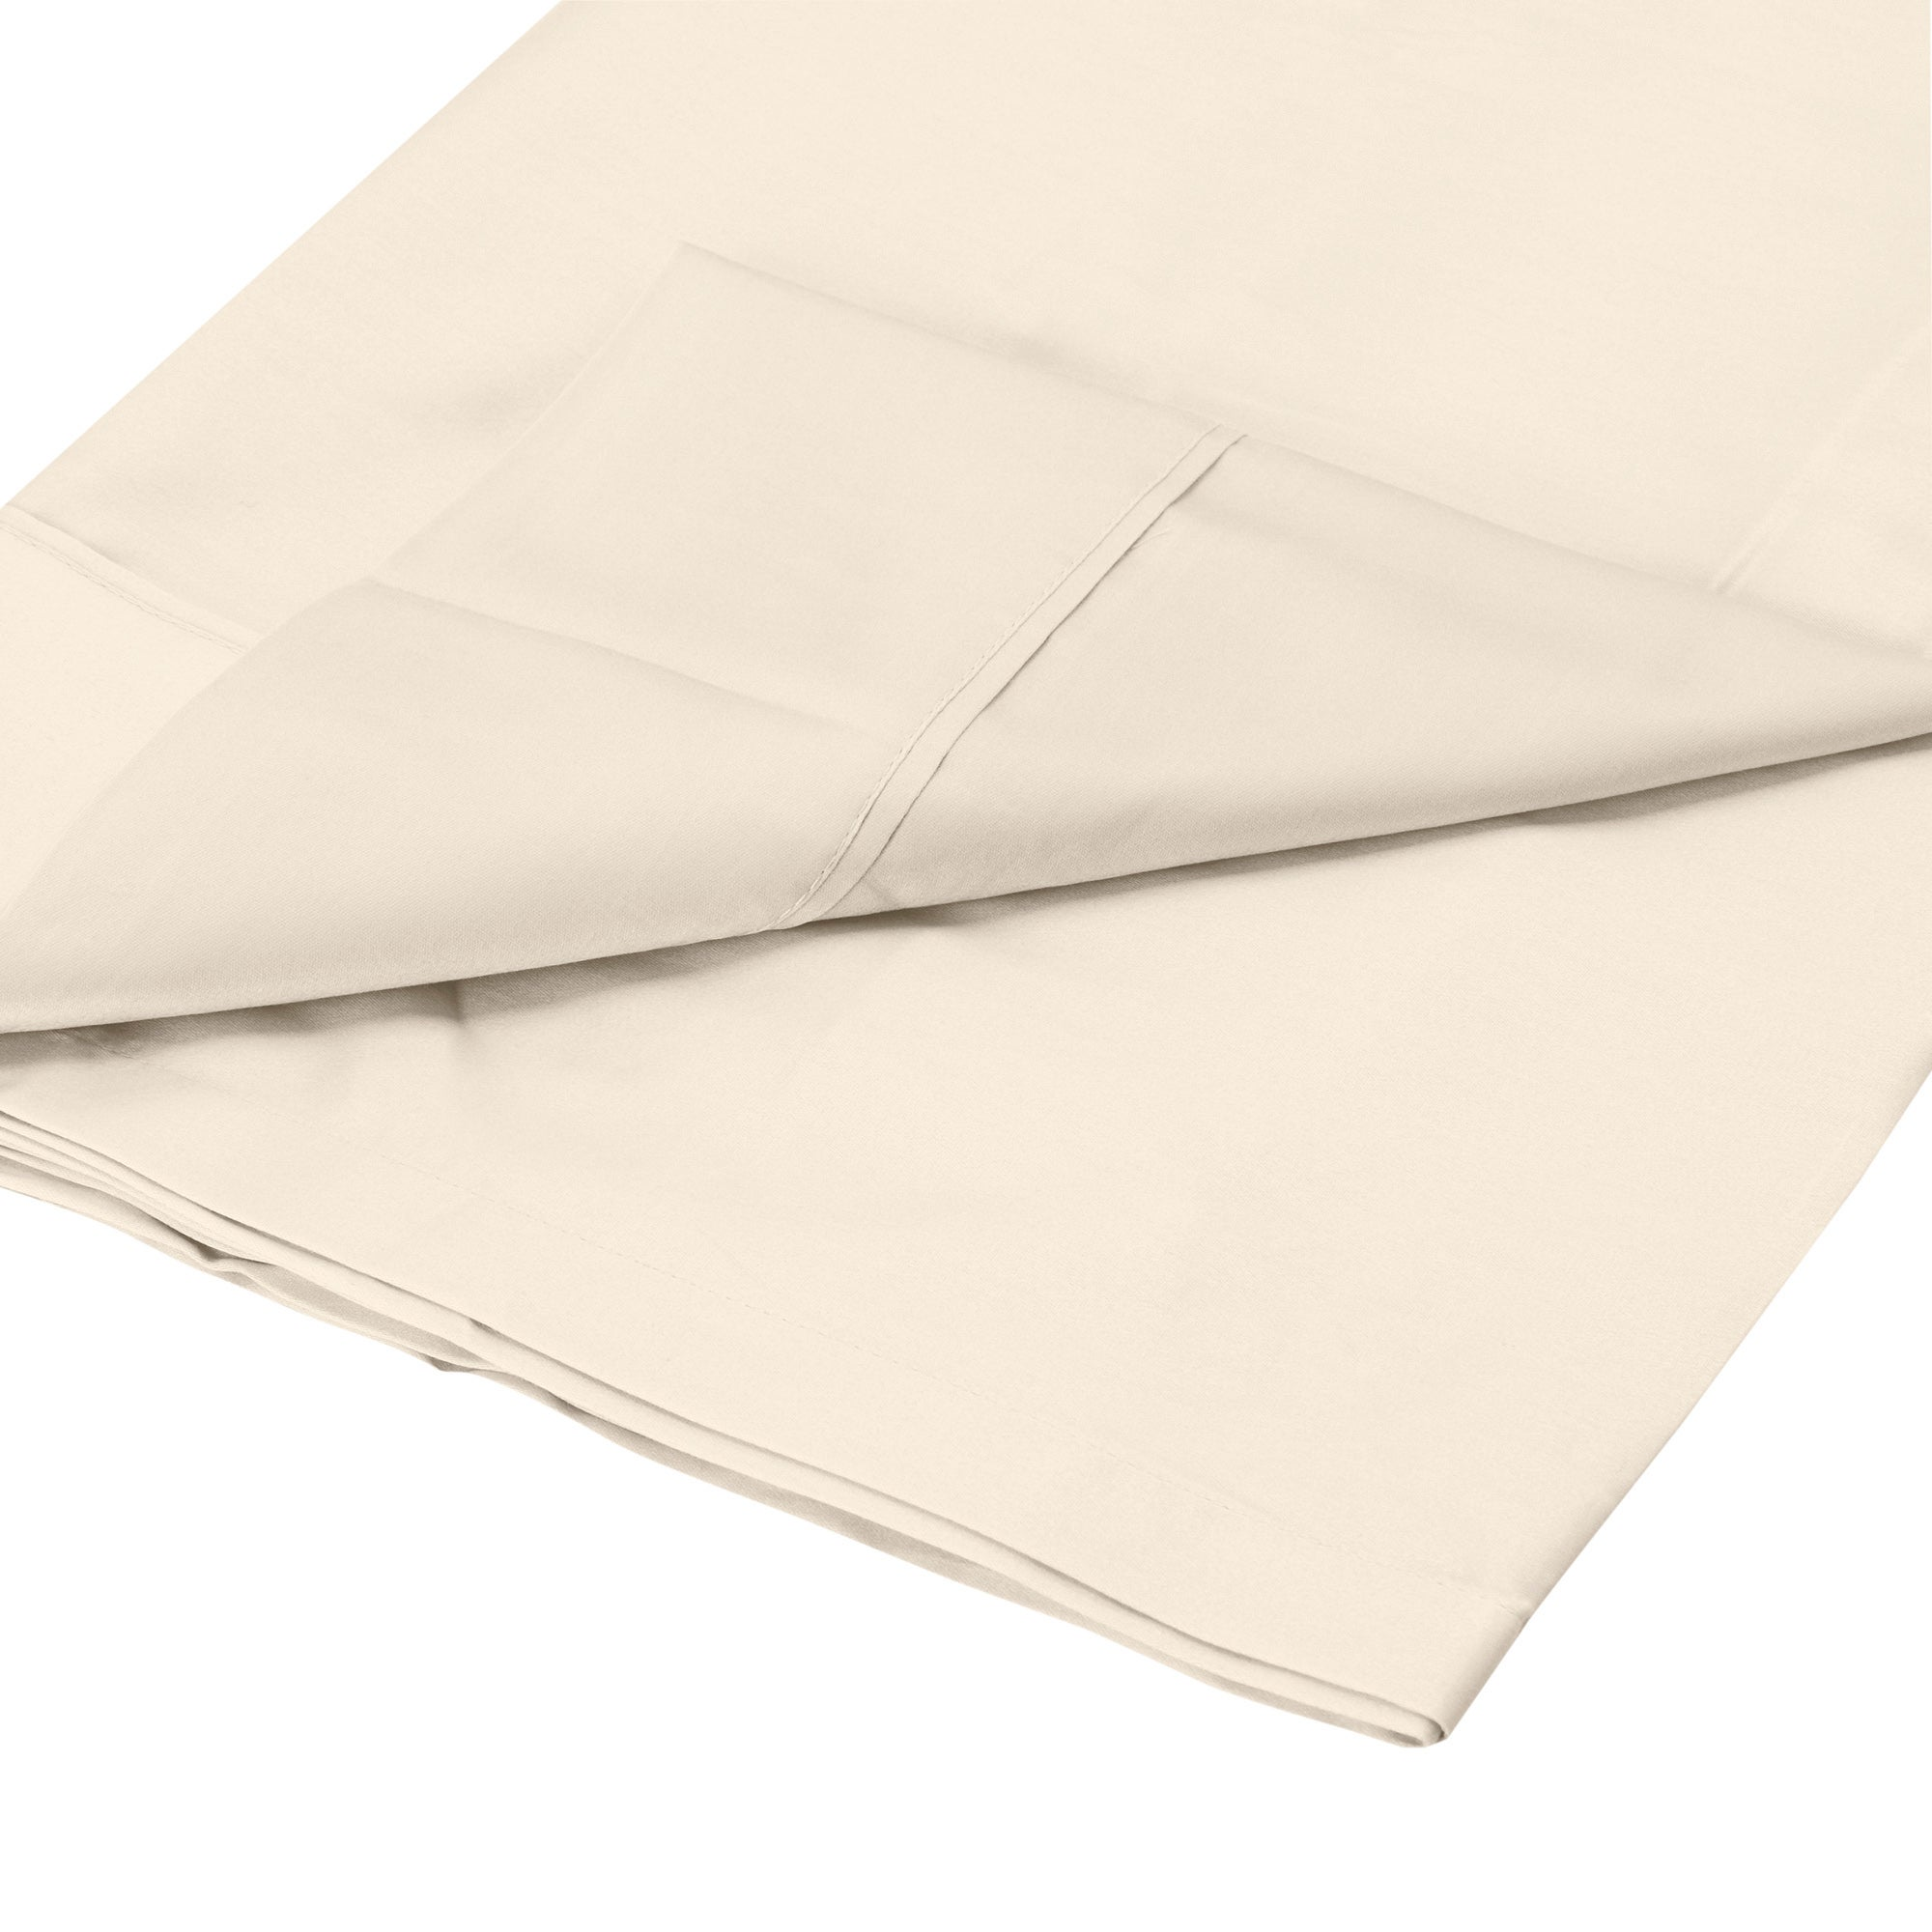 Photo of Dorma 300 thread count 100 cotton percale plain flat sheet cream -natural-